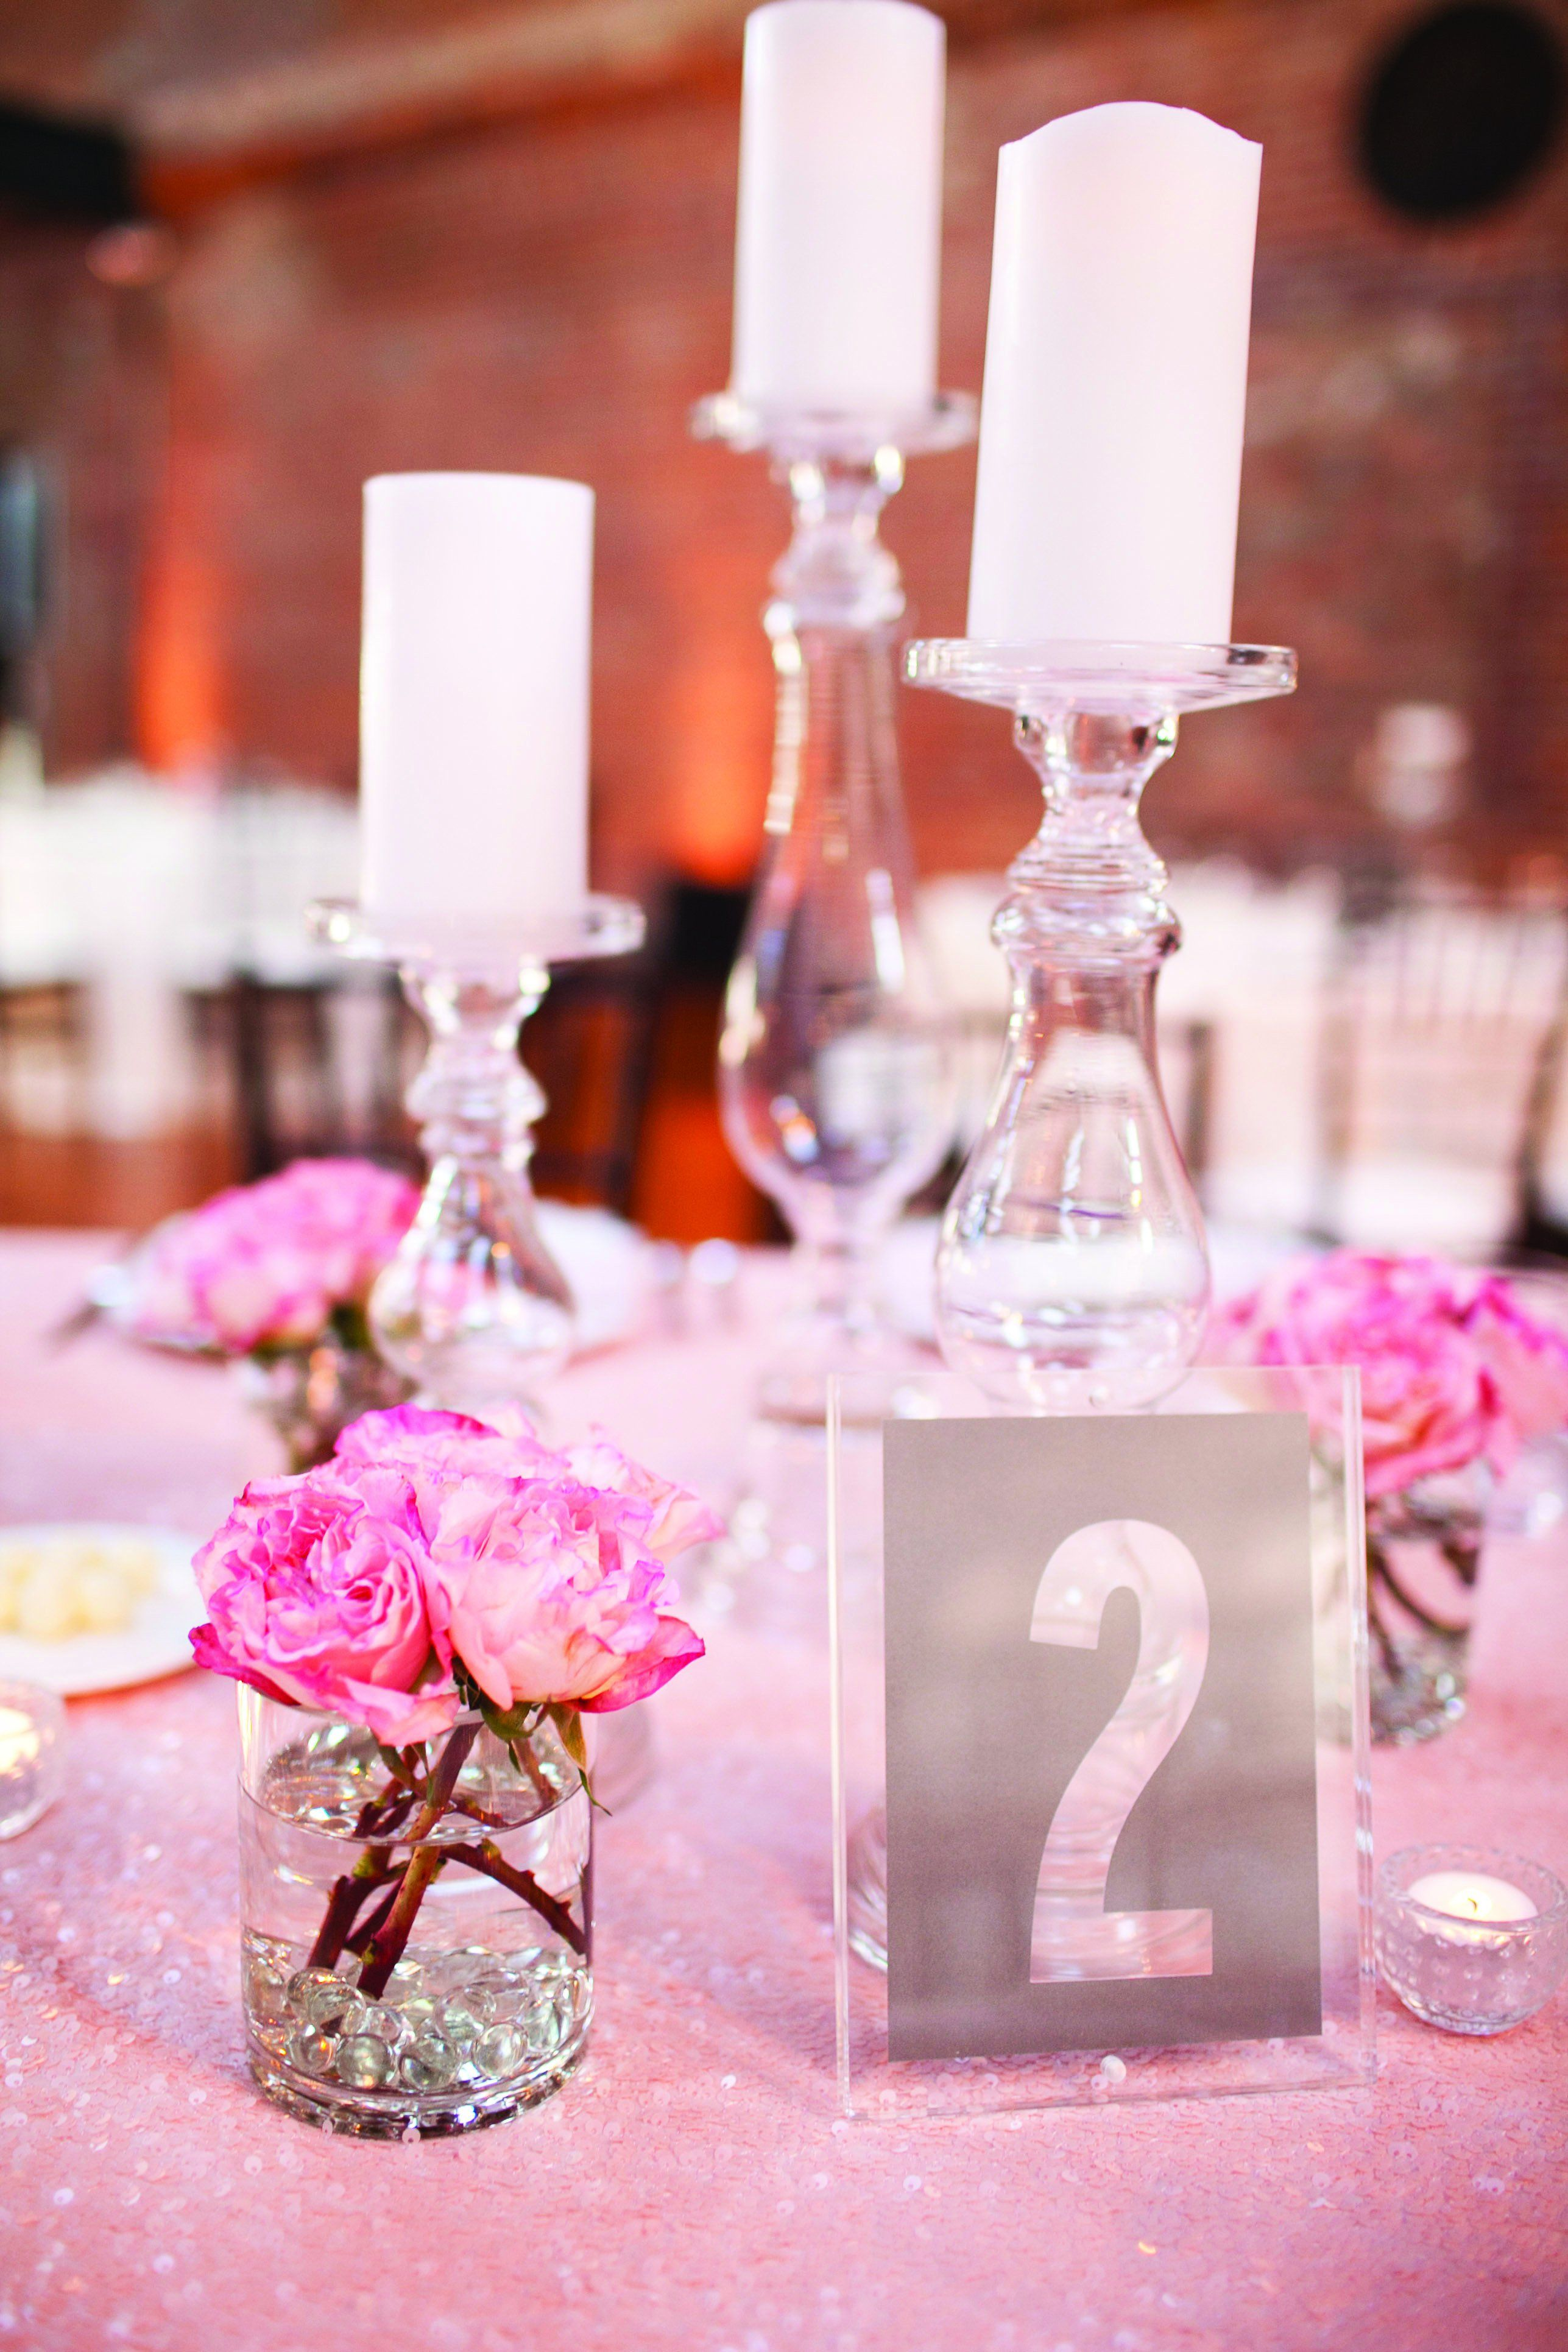 DIY Acrylic Table Numbers | Decor & Inspiration: Wedding | Pinterest ...